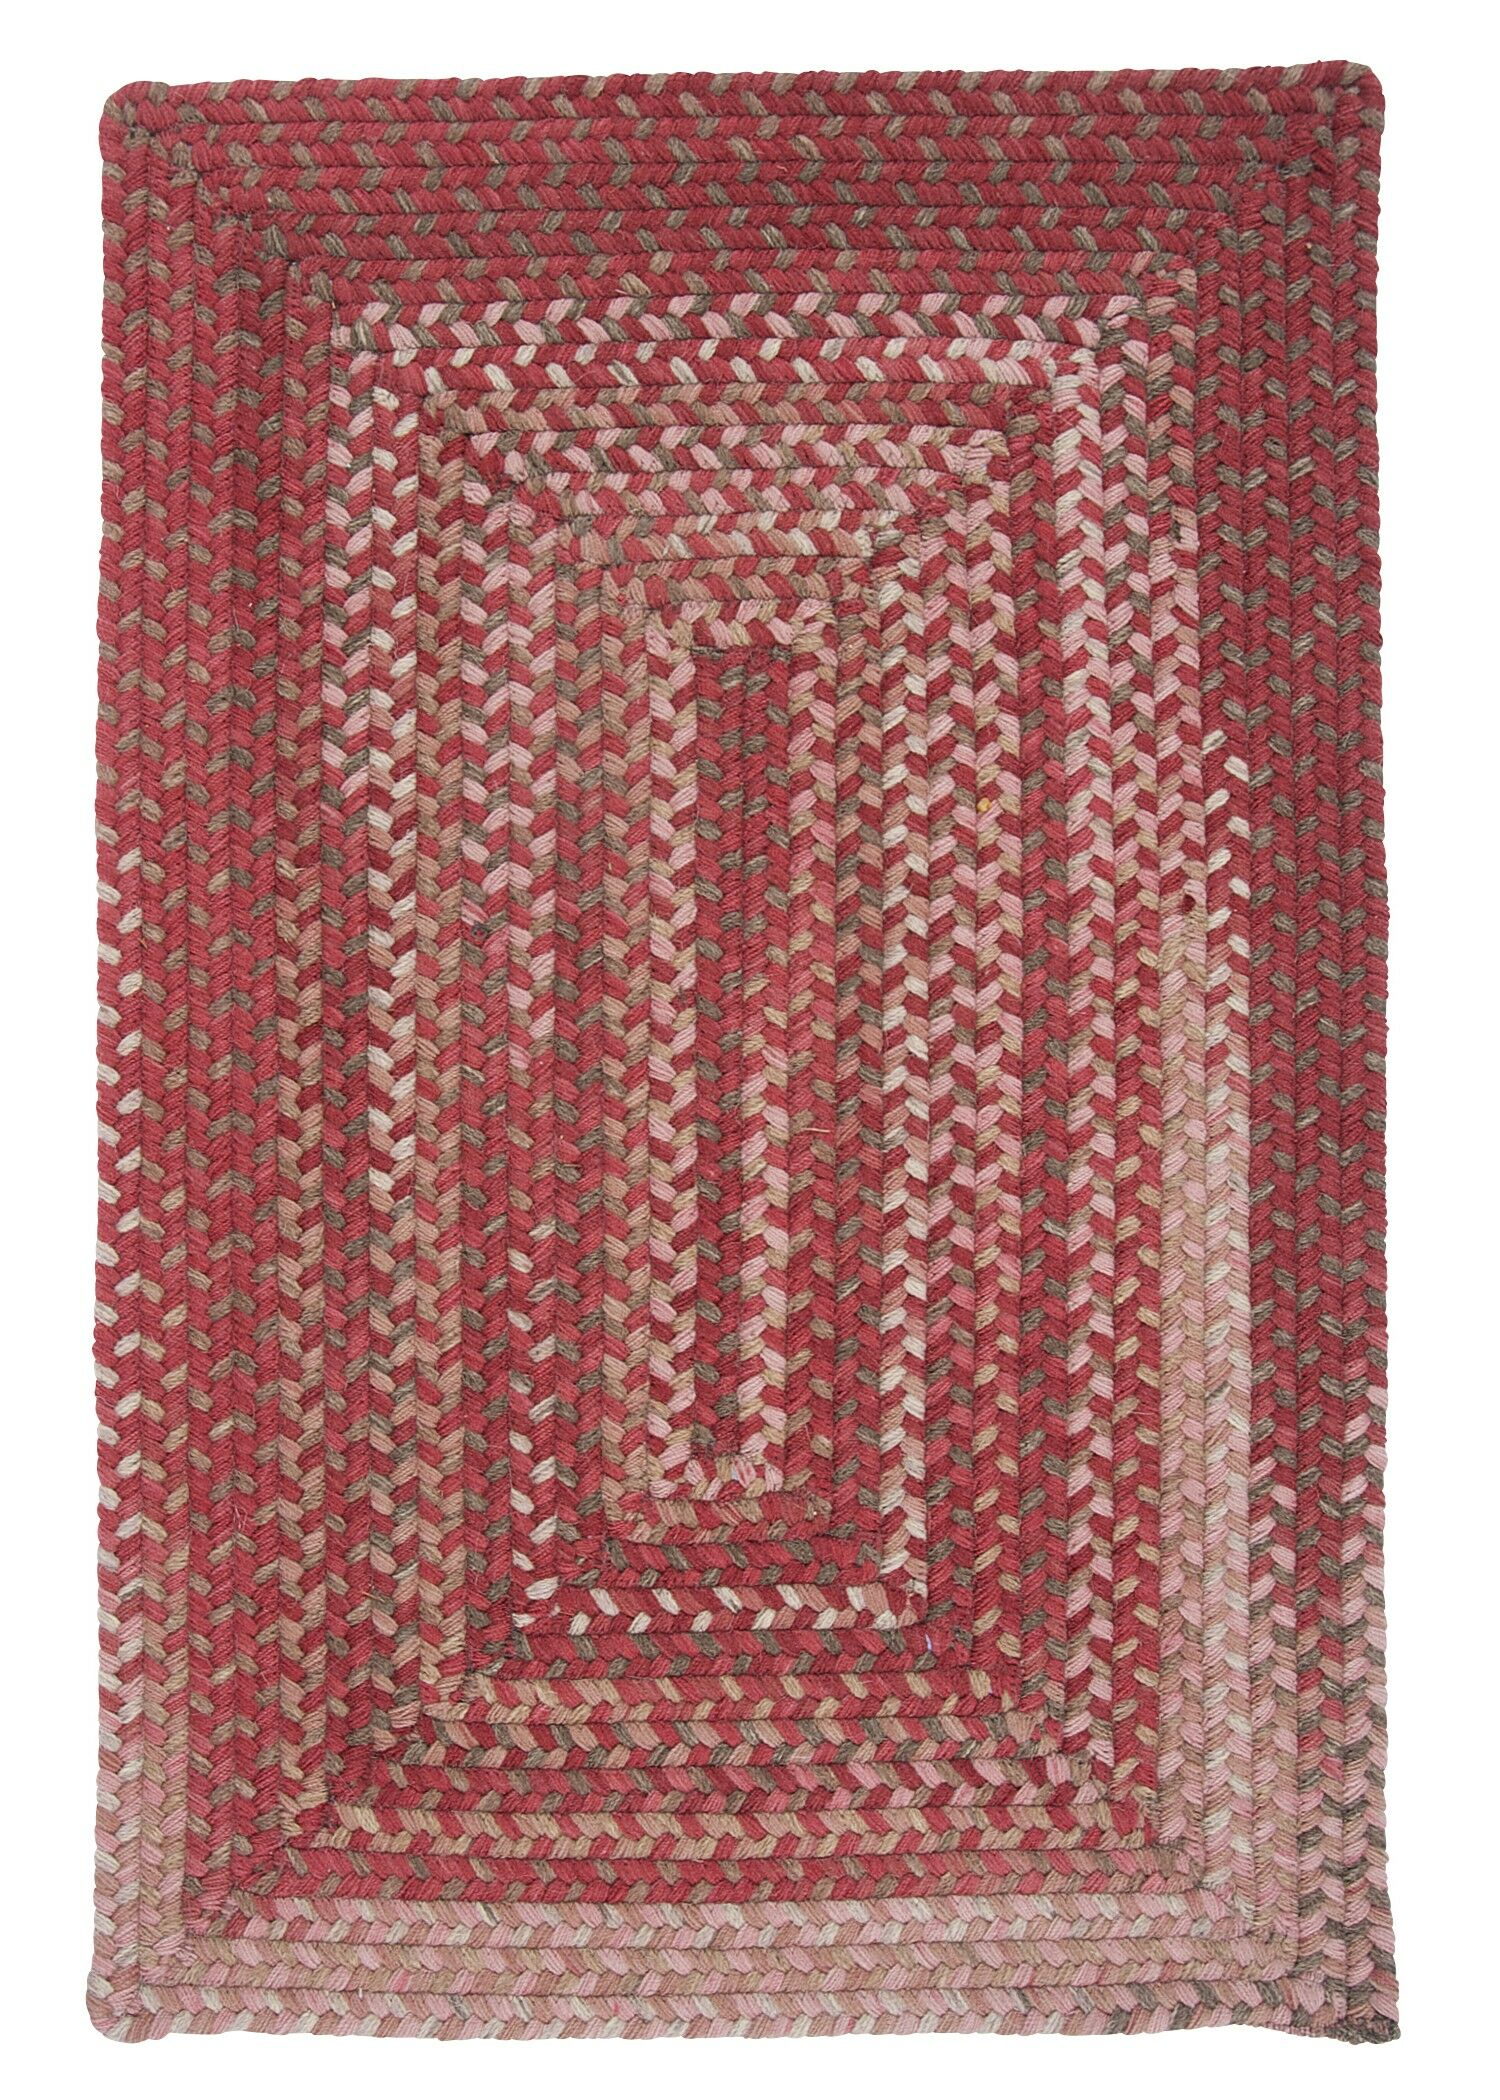 Gloucester Rhubarb Braided Red Area Rug Rug Size: Runner 2' x 10'